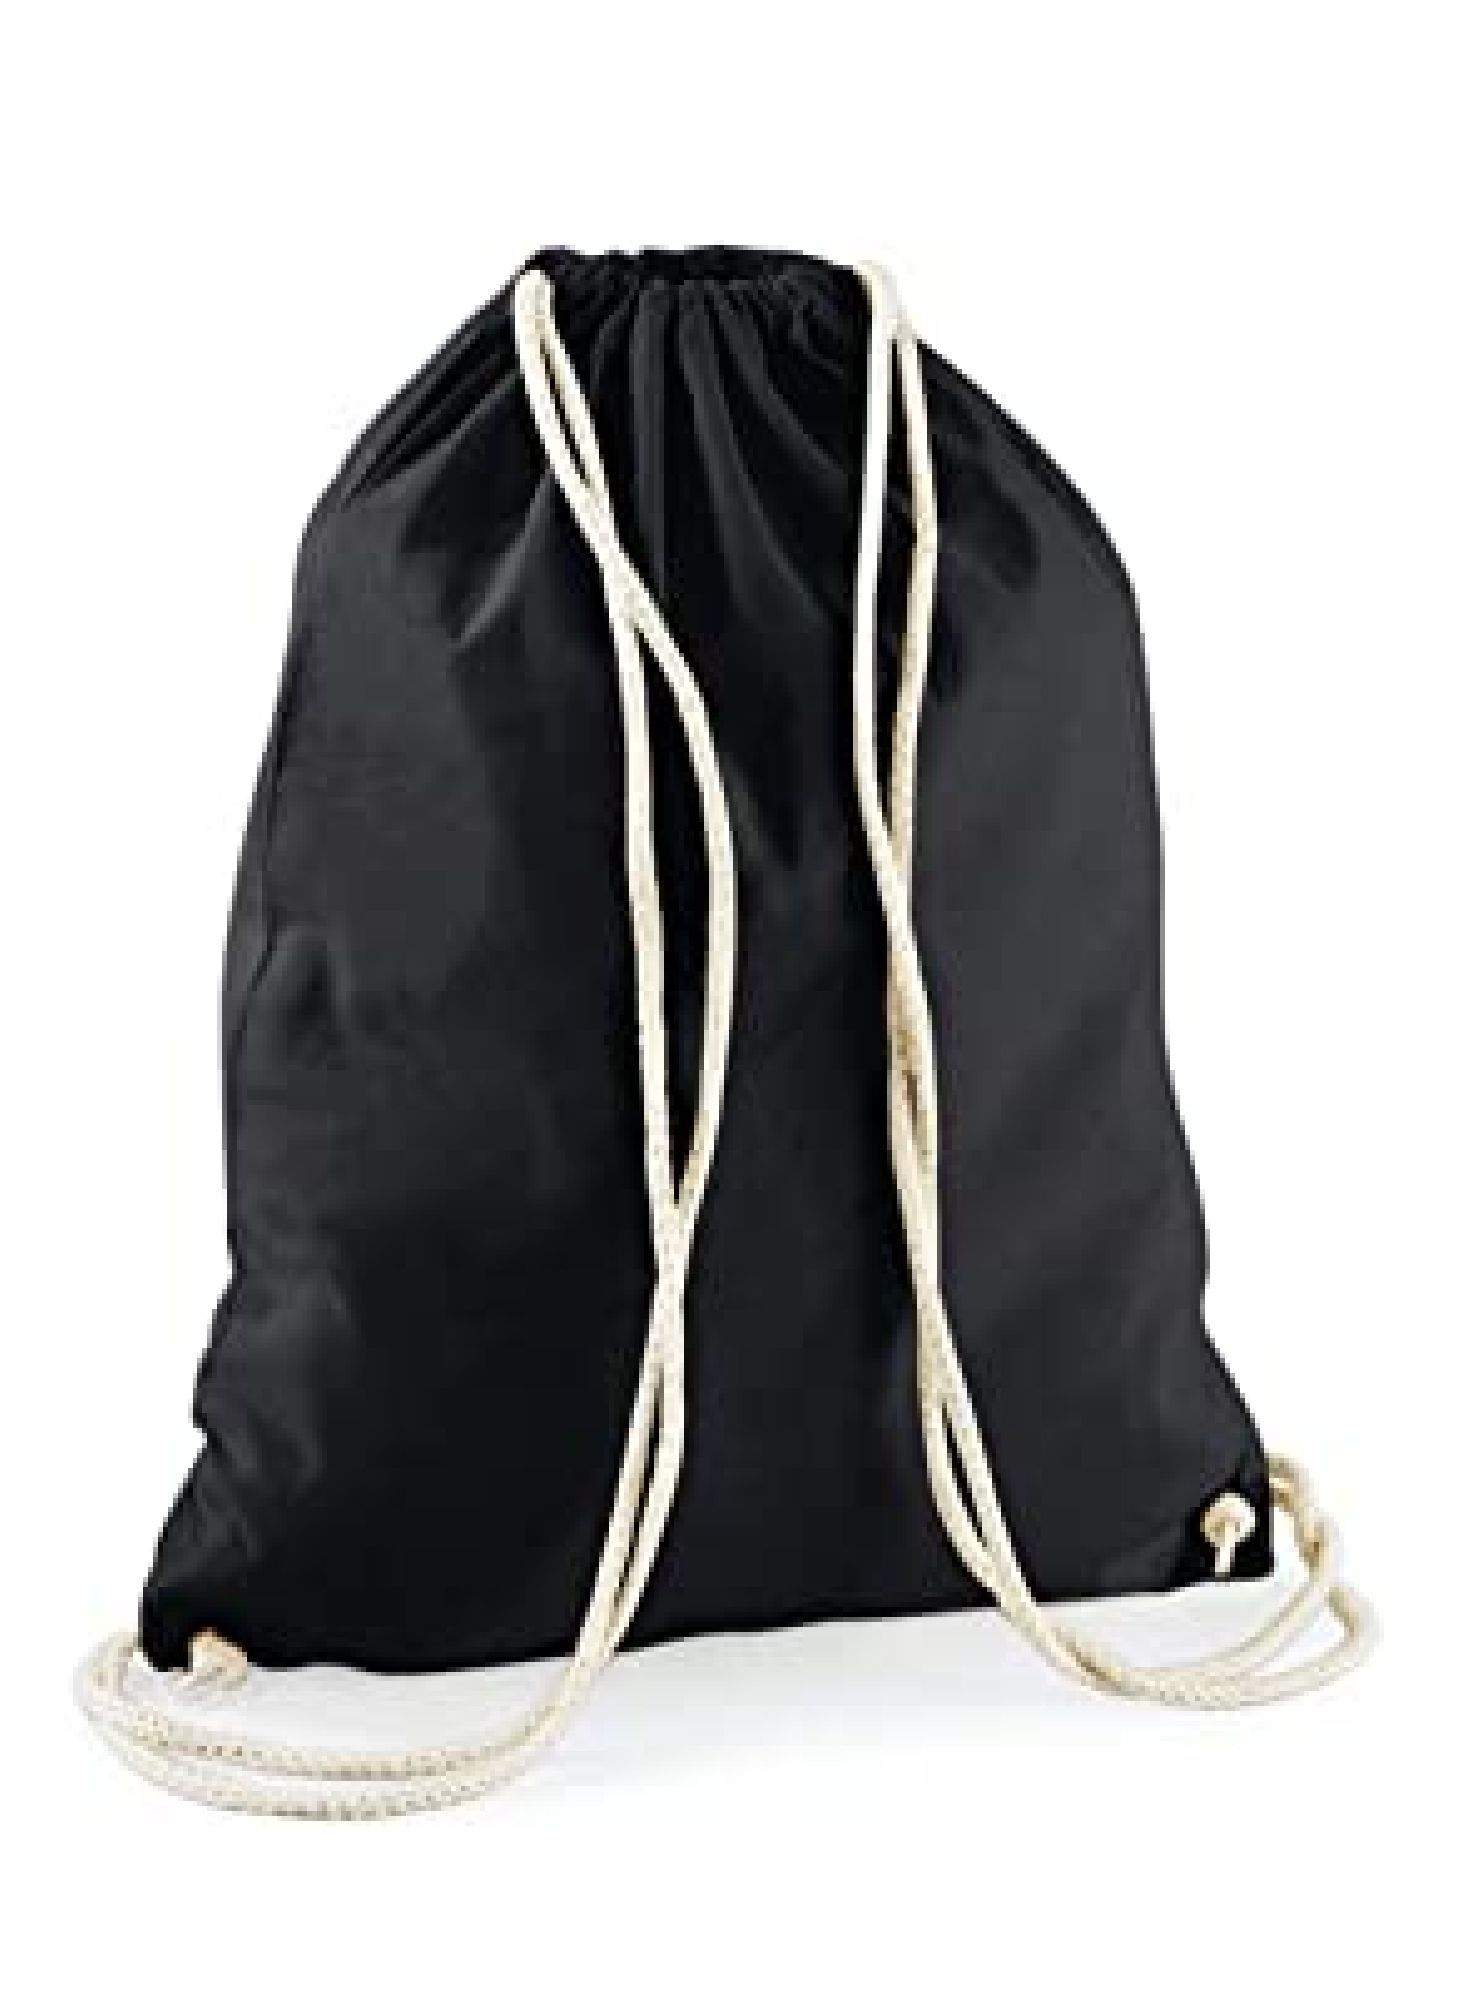 Cotton Clothing Bag